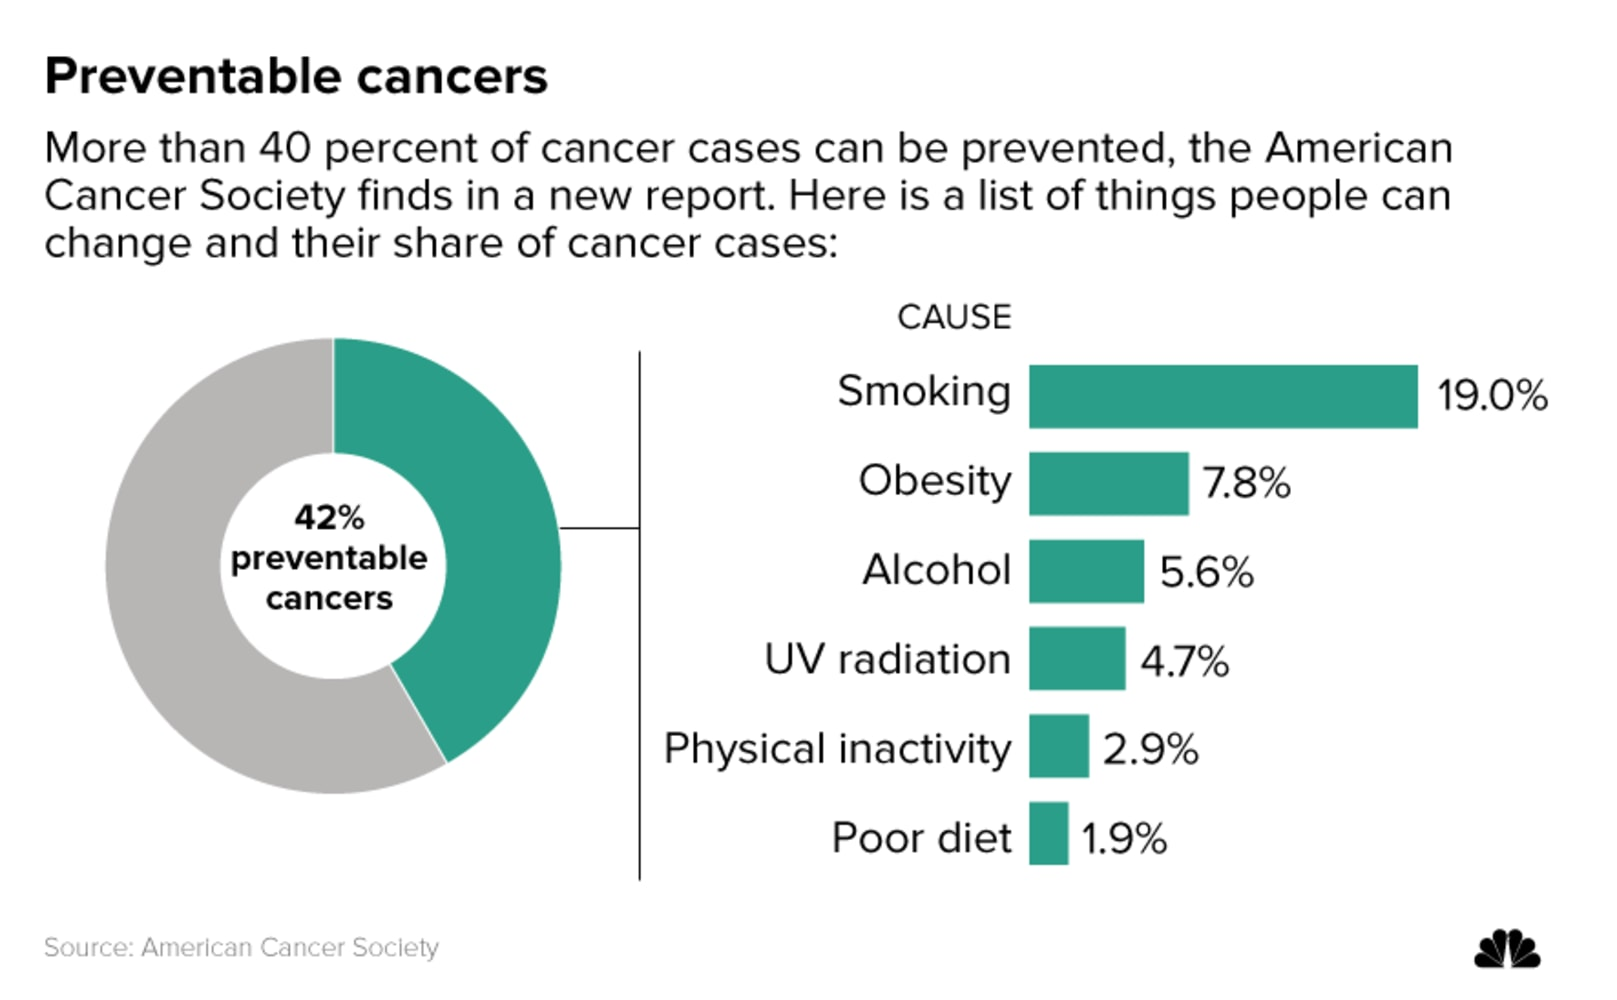 Bad Lifestyles Account for Nearly Half of Cancer Deaths in America